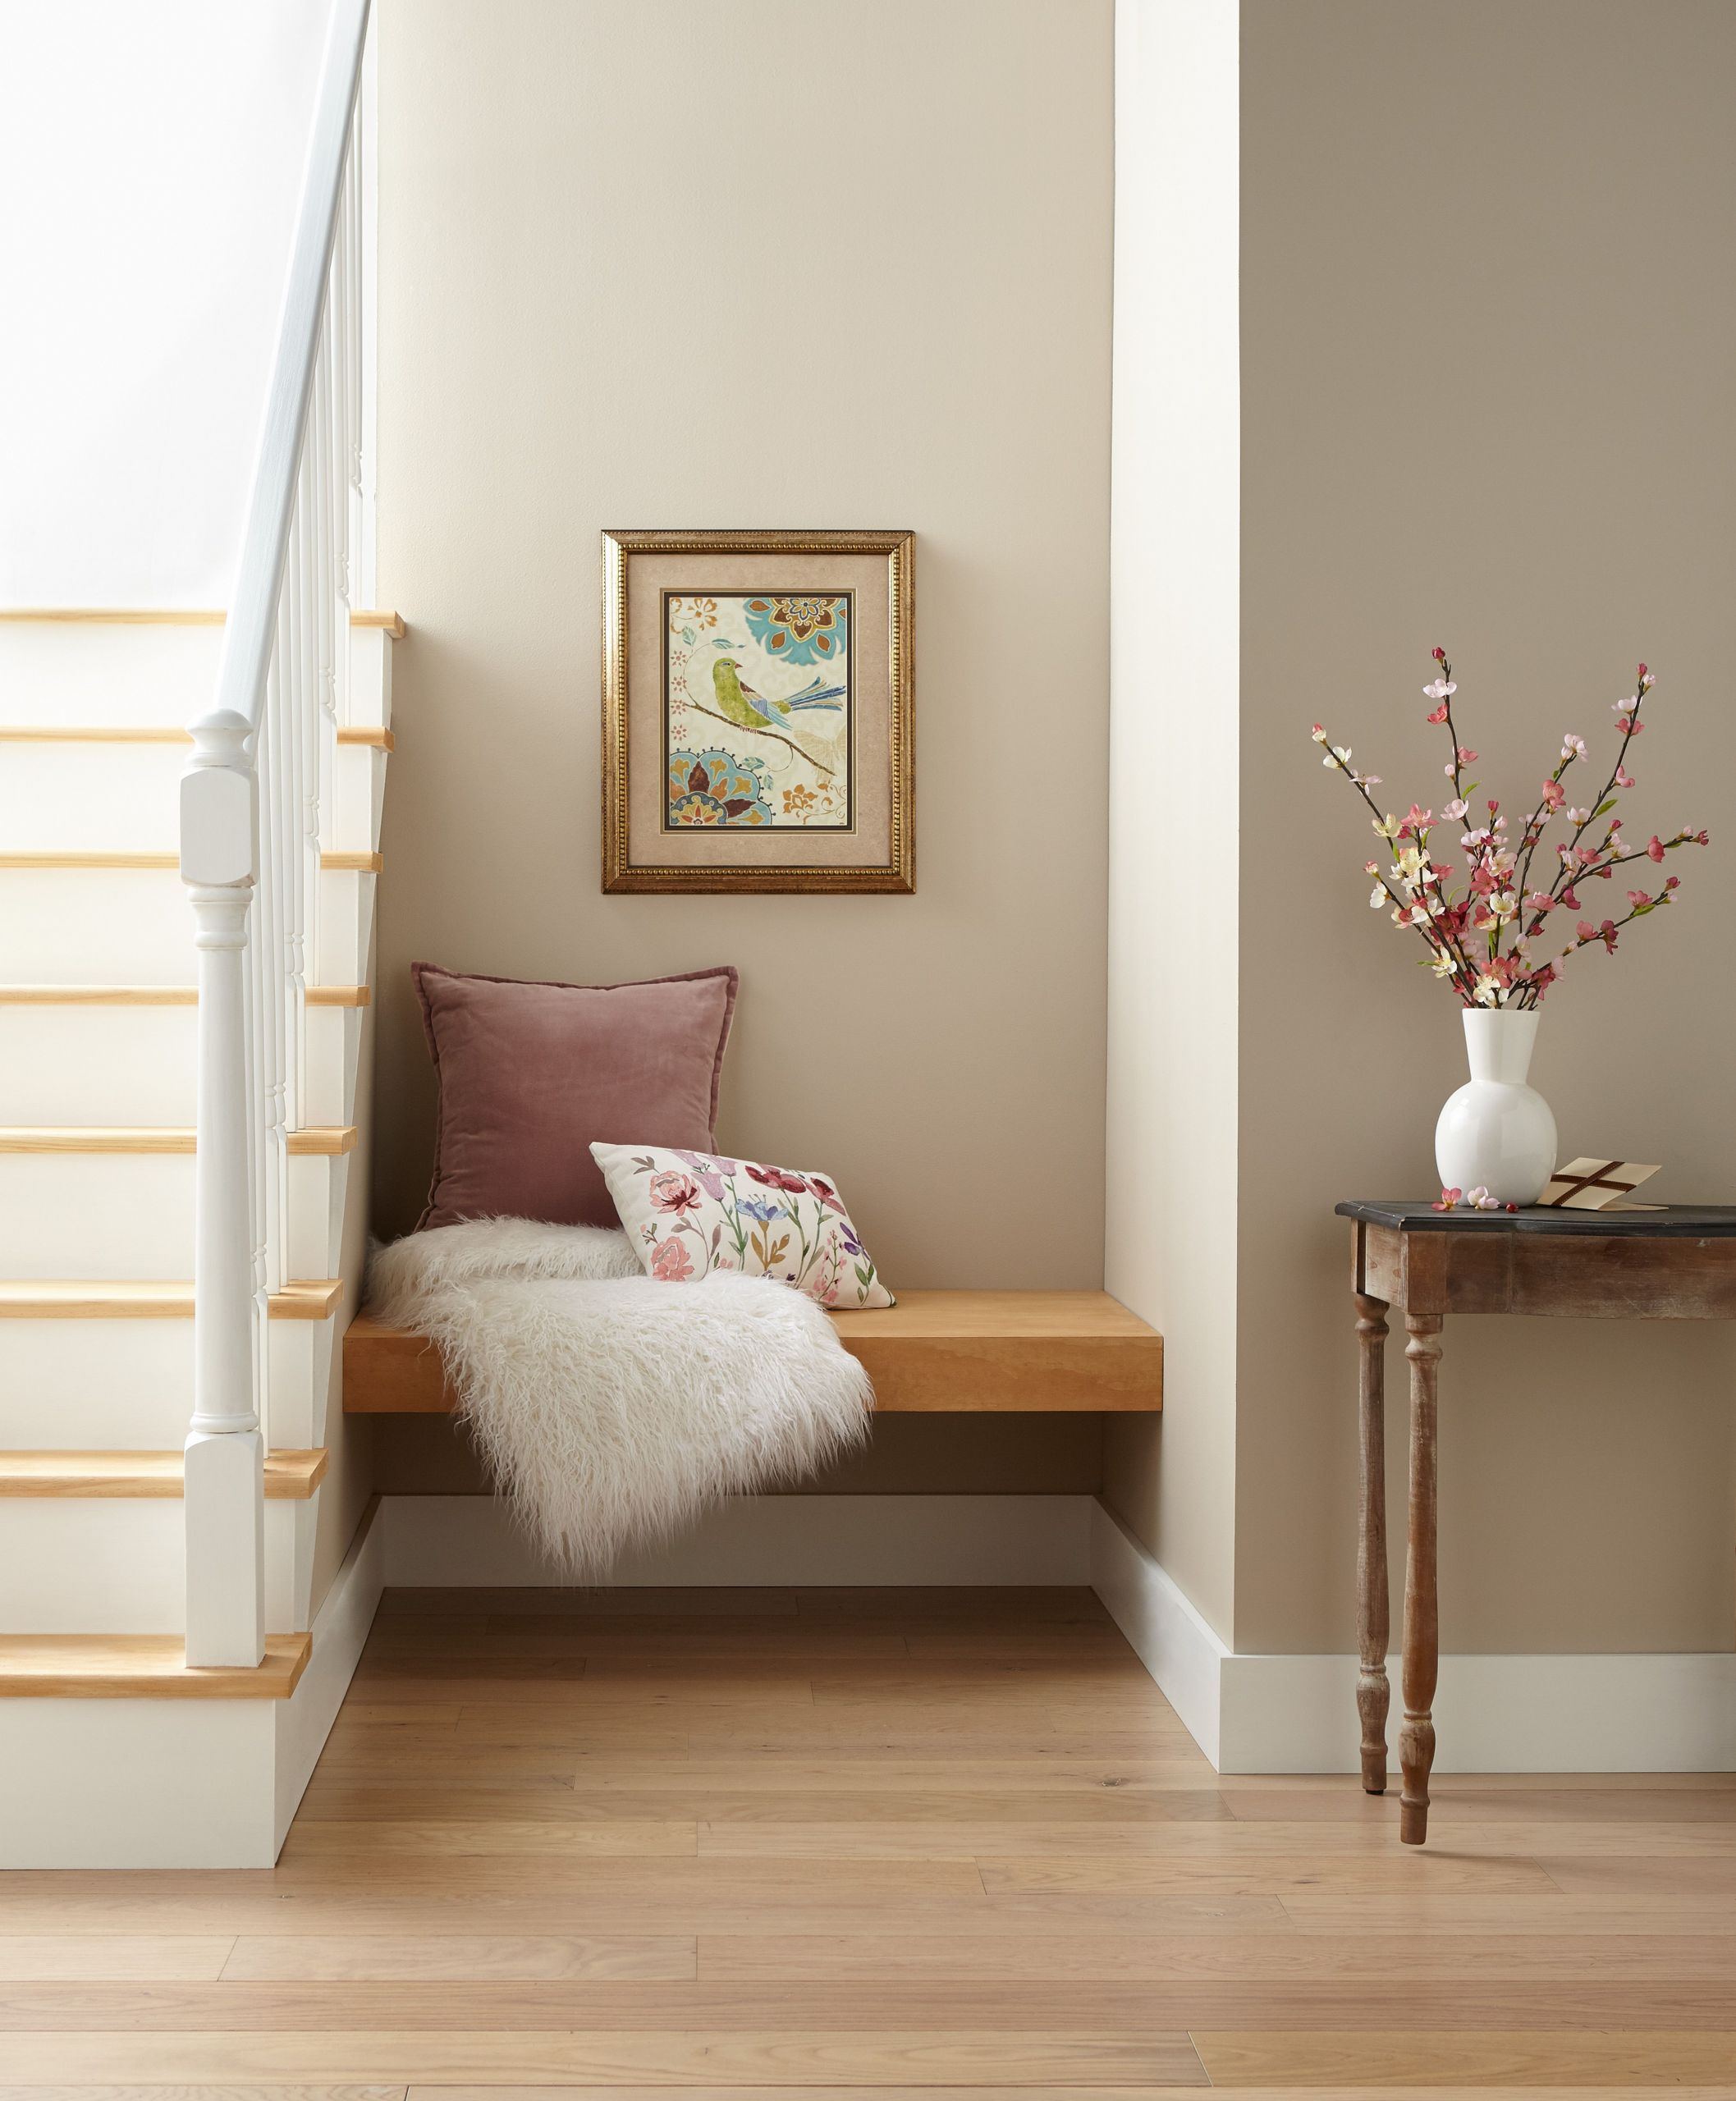 Paint Colors For Bedroom 2020  These Are the Paint Color Trends for 2020 According to Behr